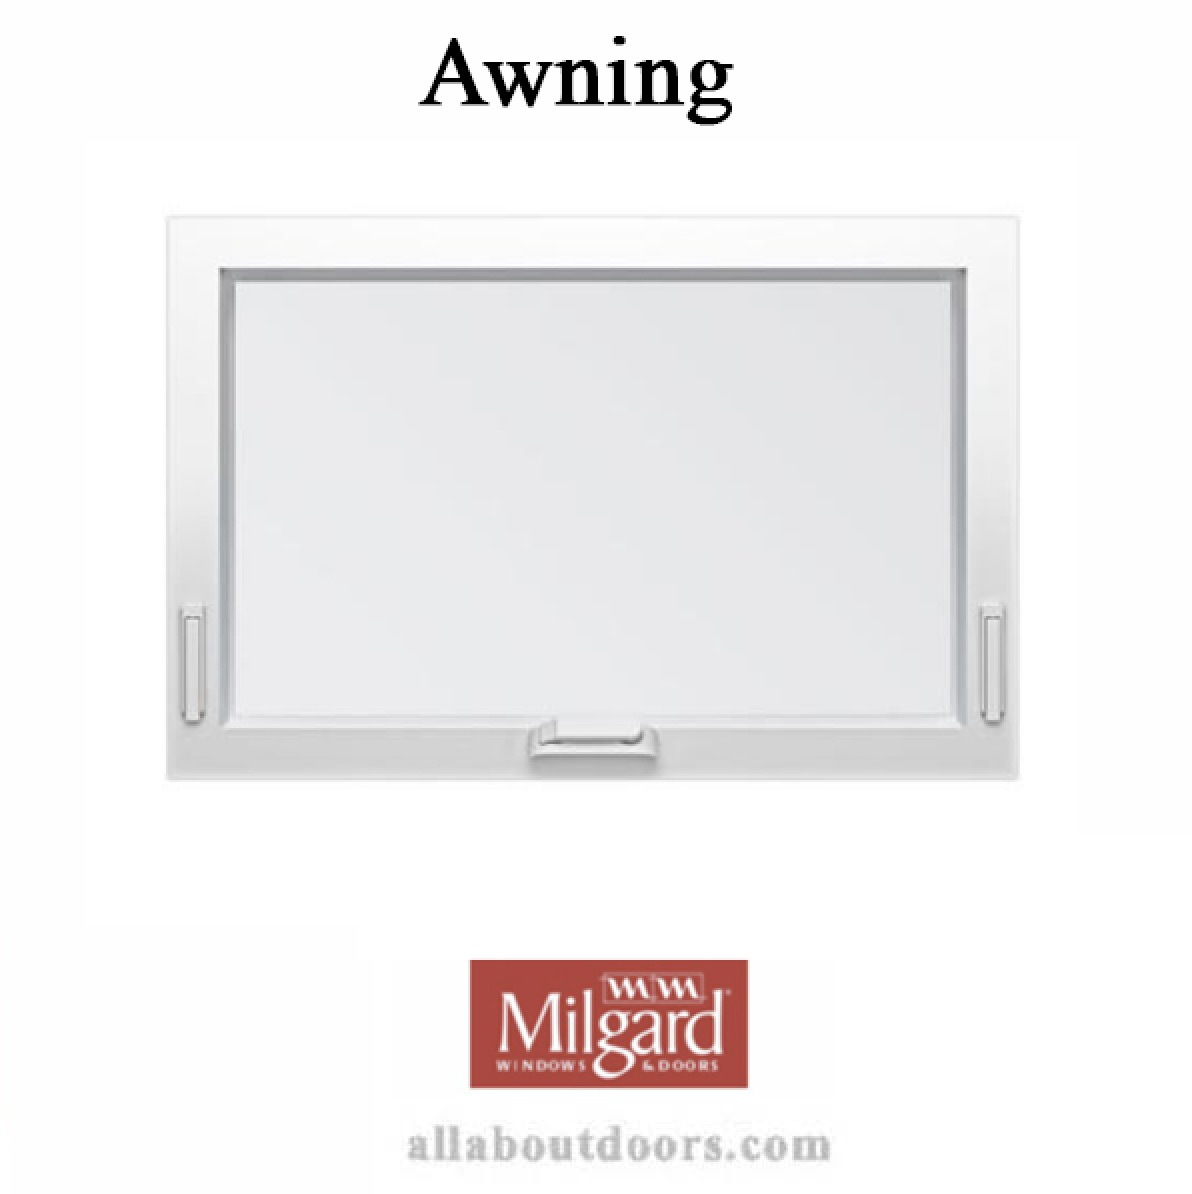 Milgard Awning Window Hardware